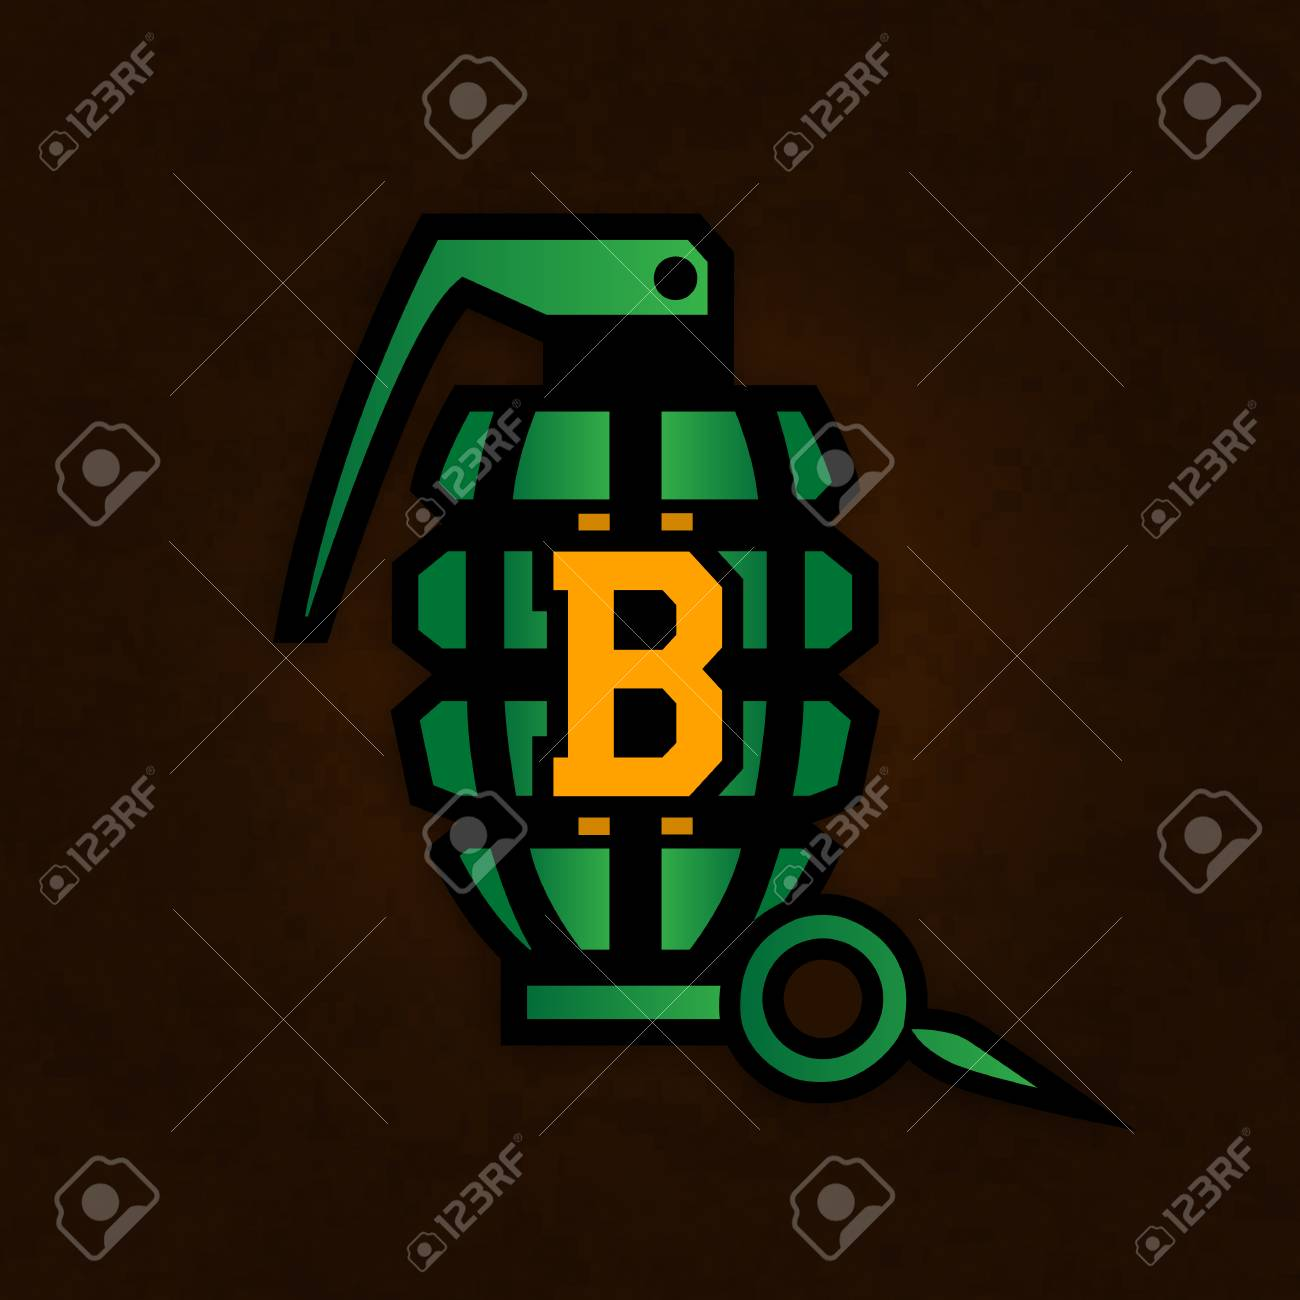 Illustration showing danger of investing in crypto currencies. Stock Illustration - 92400635